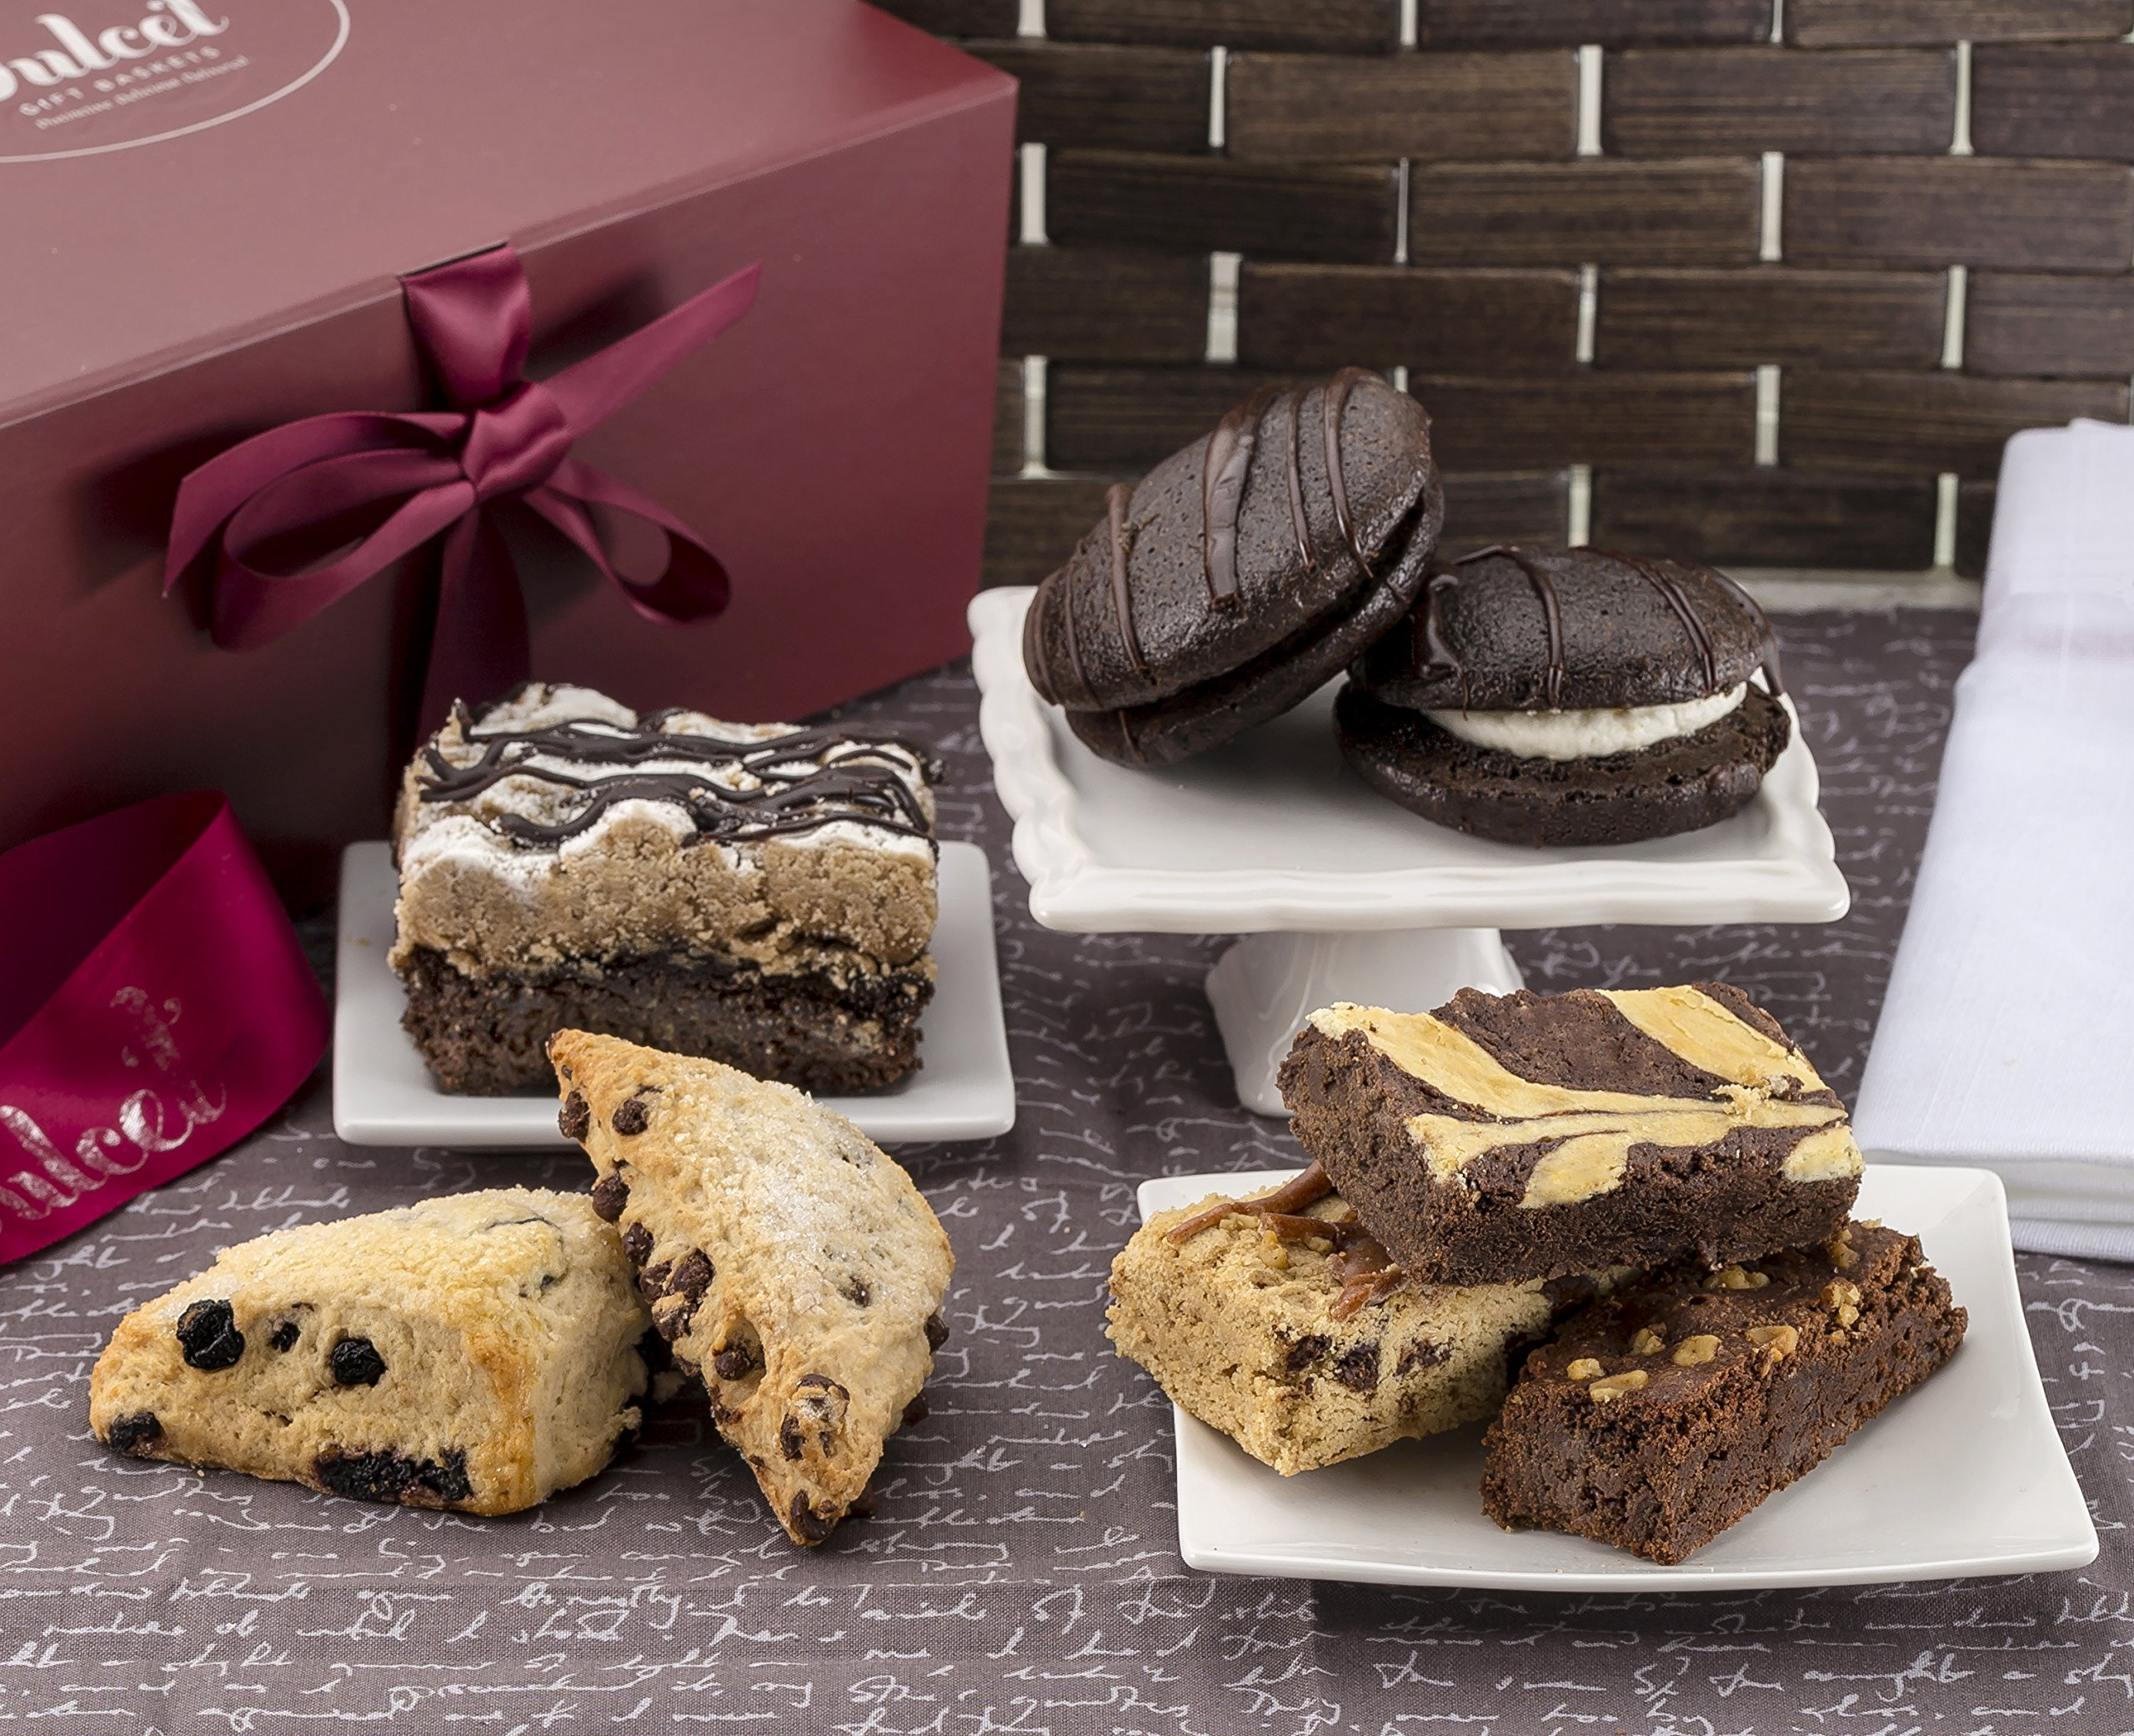 Gourmet Pastry Gift Basket of Foods-Includes Whoopee Pies,Scones, Crumb Cakes, Blondie, Walnut Brownie, Chocolate Cheese Brownie. by Dulcet Gift Baskets